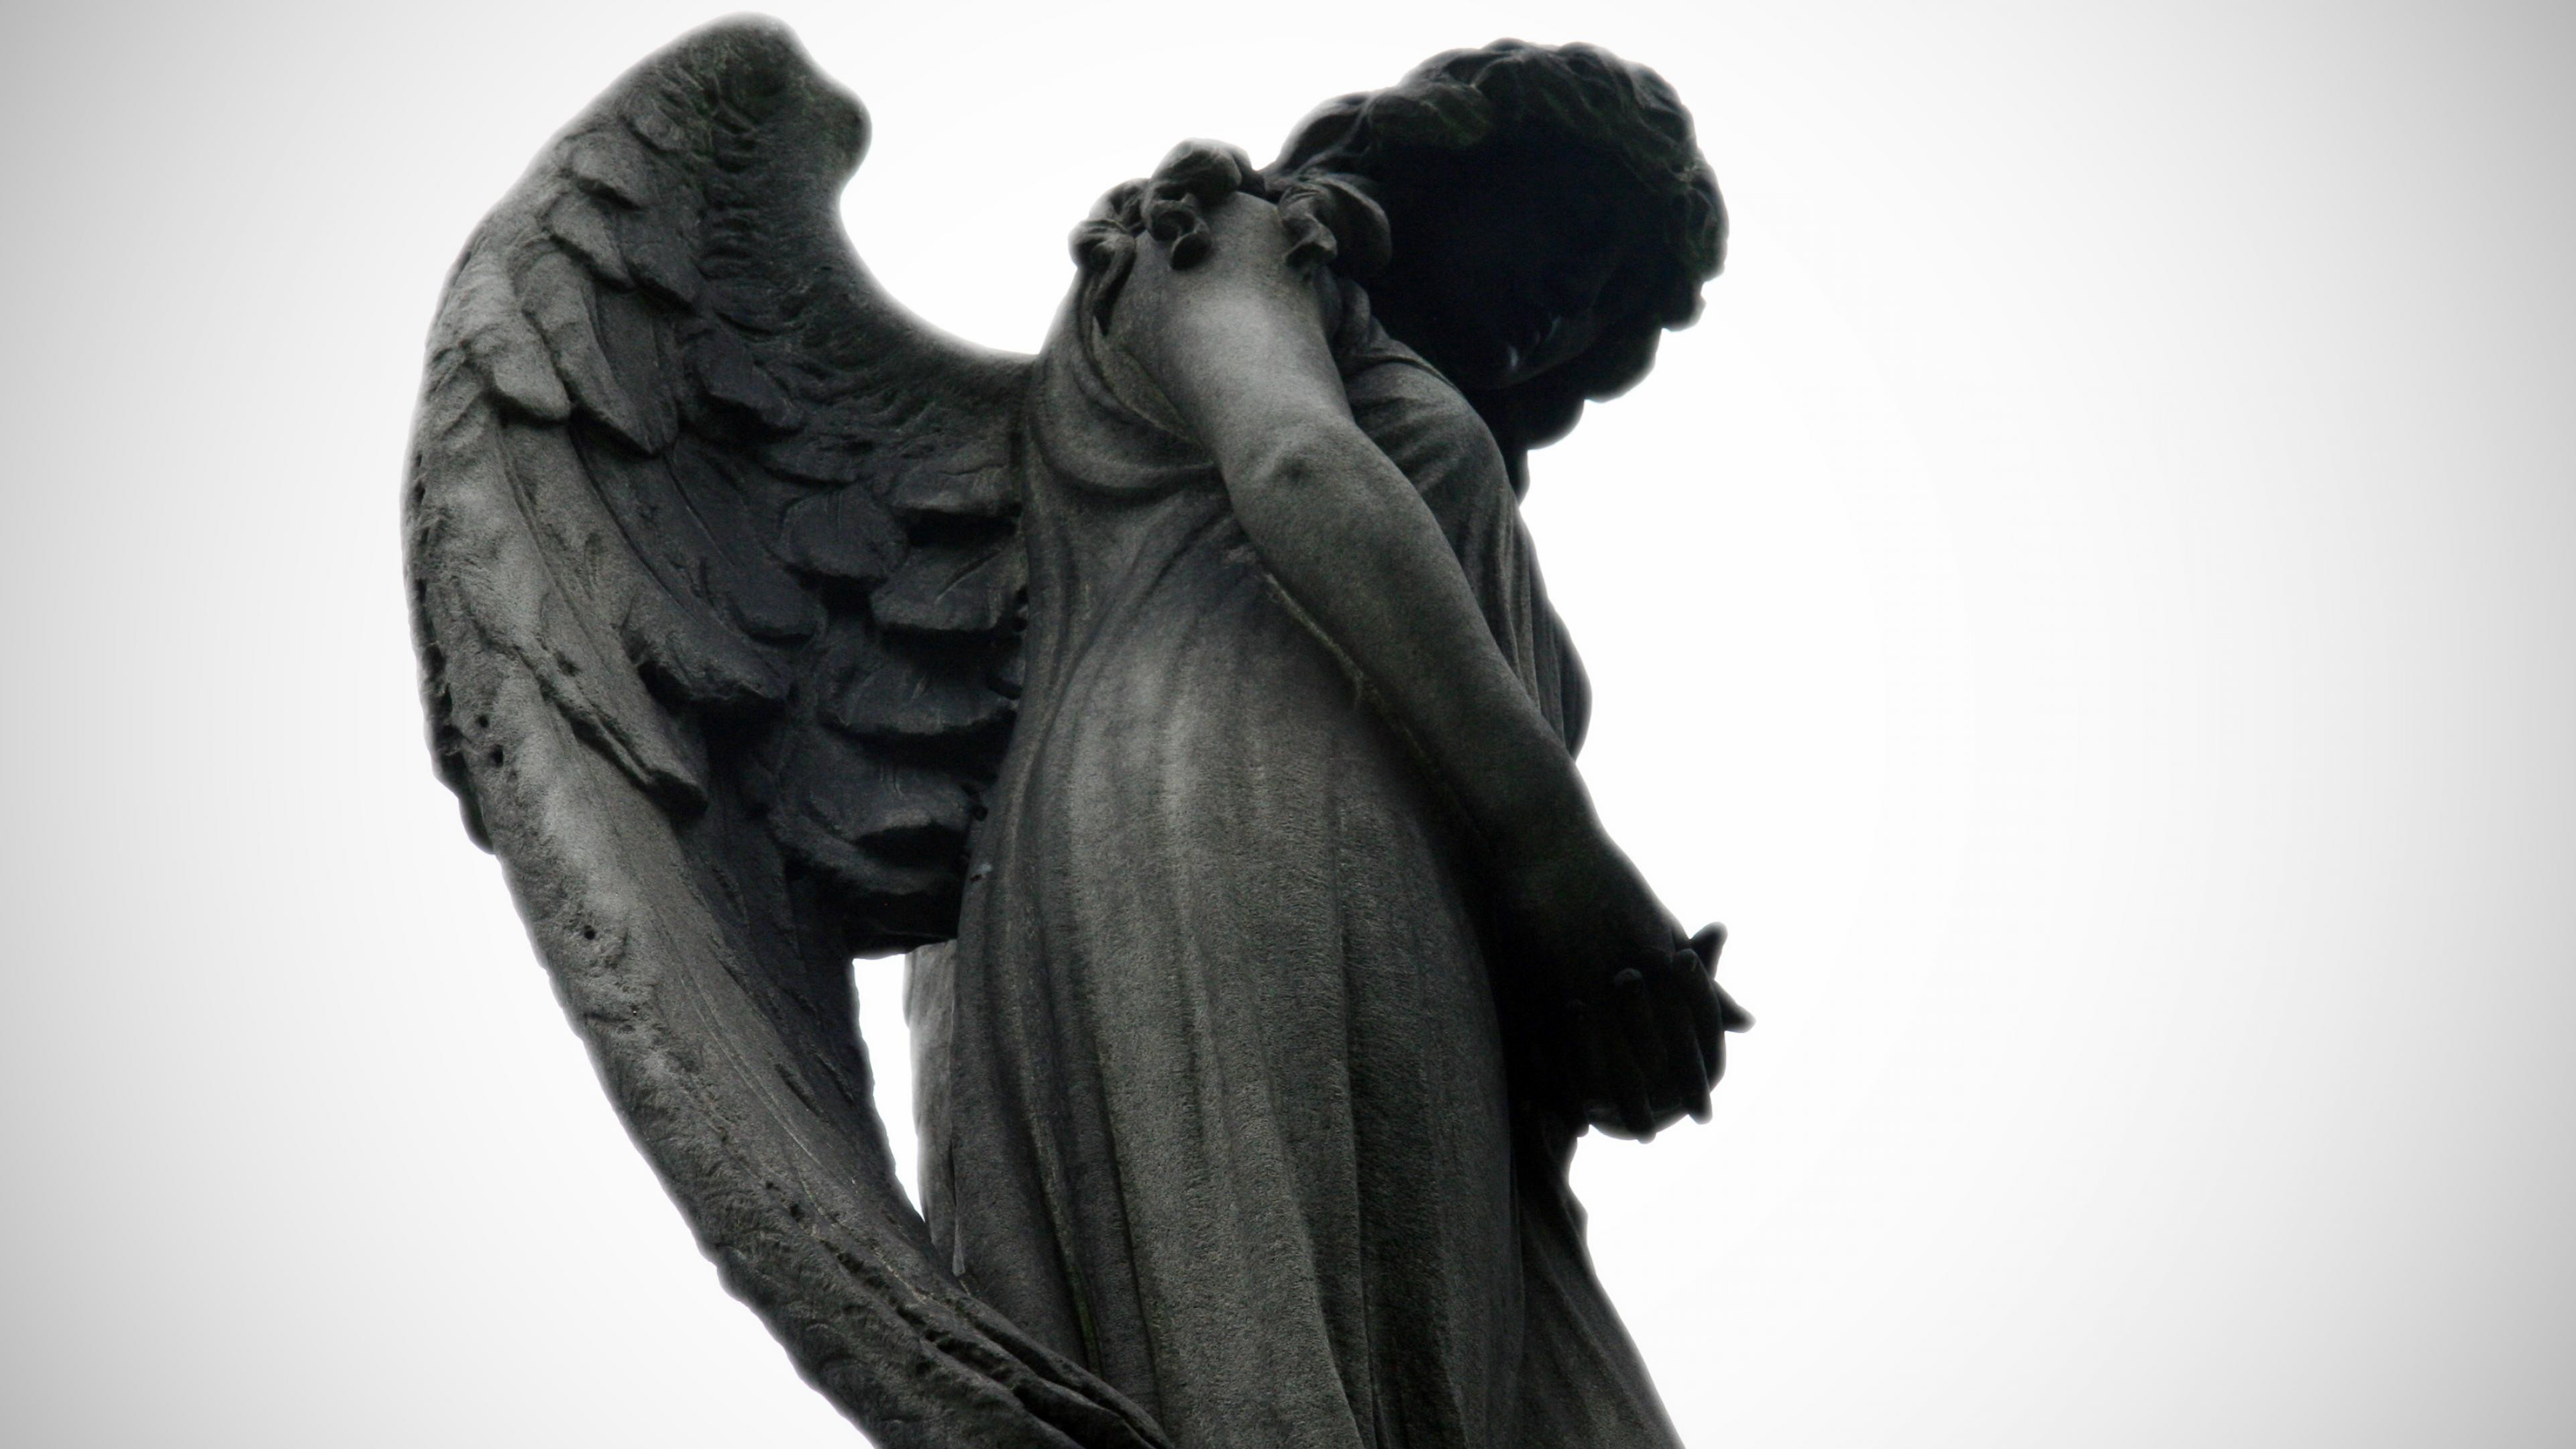 3840x2160 1280x800 Doctor Who Weeping Angels Moving Wallpaper Weeping angels wallpaper